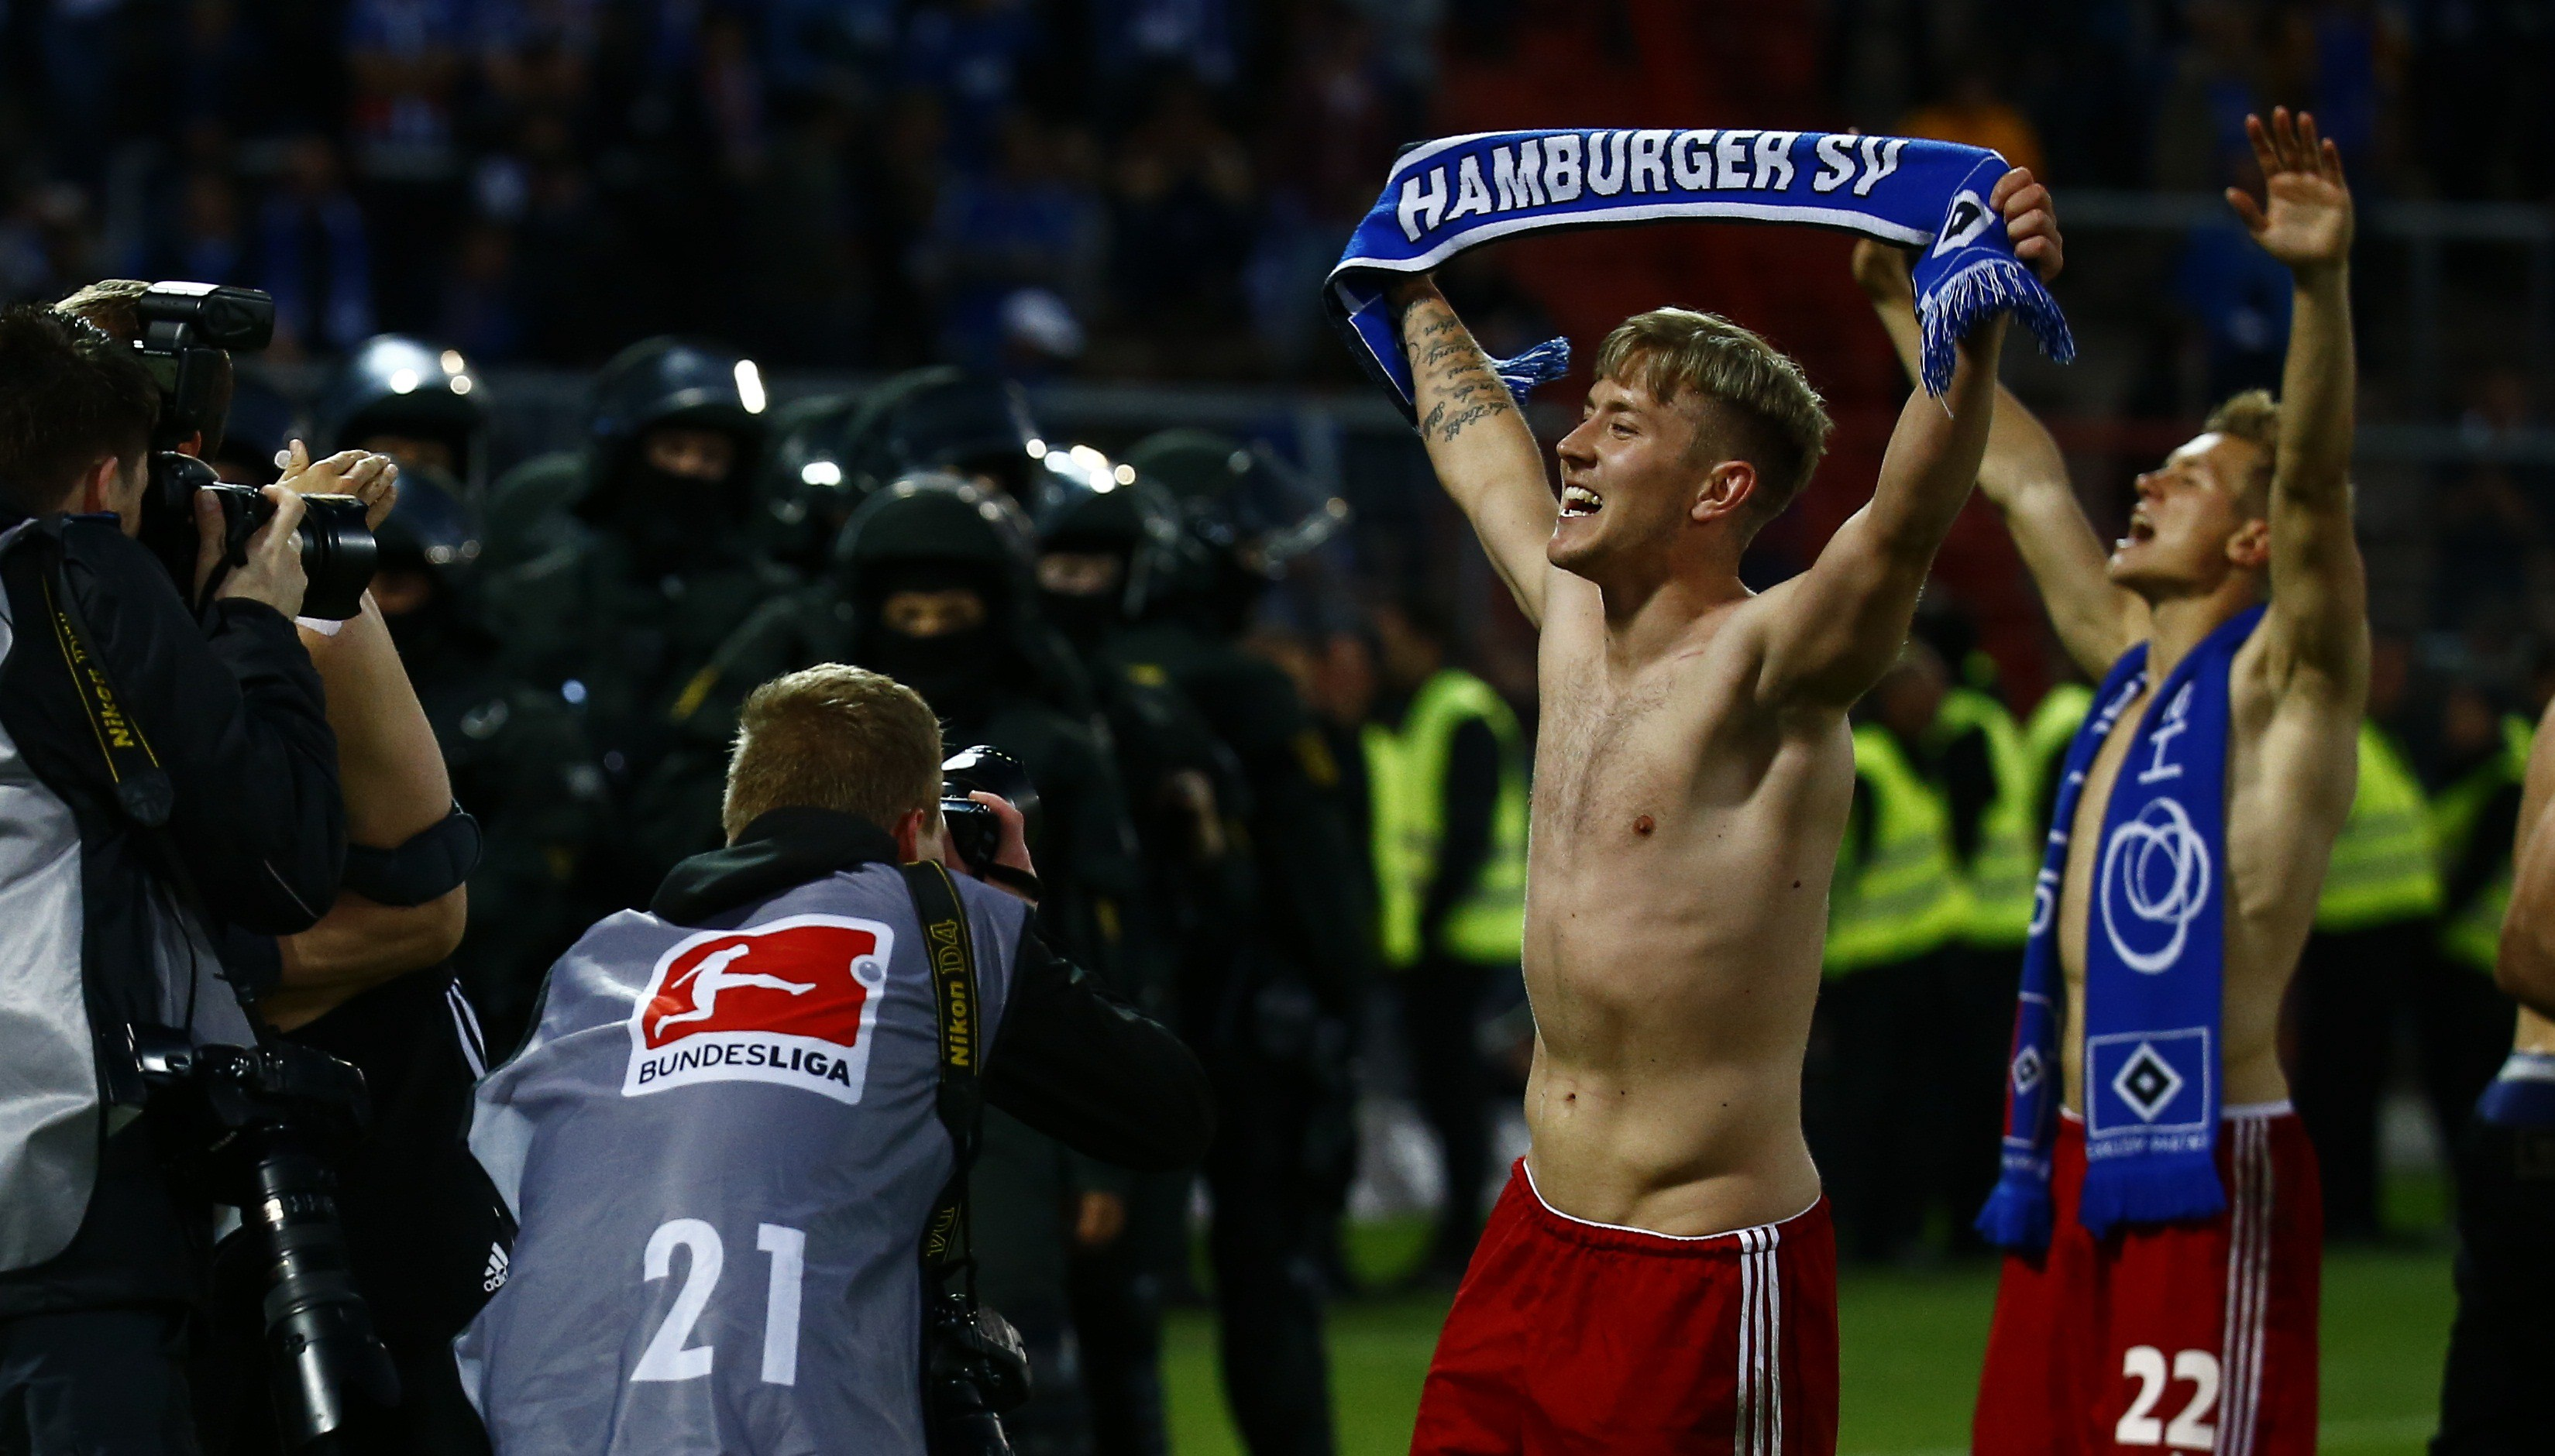 Hamburg SV's Lewis Holtby holds up a scarf nex to Matthias Ostrzolek (R) as they celebrate after their German Bundesliga second leg relegation playoff soccer match against Karlsruhe SC in Karlsruhe, Germany June 1, 2015